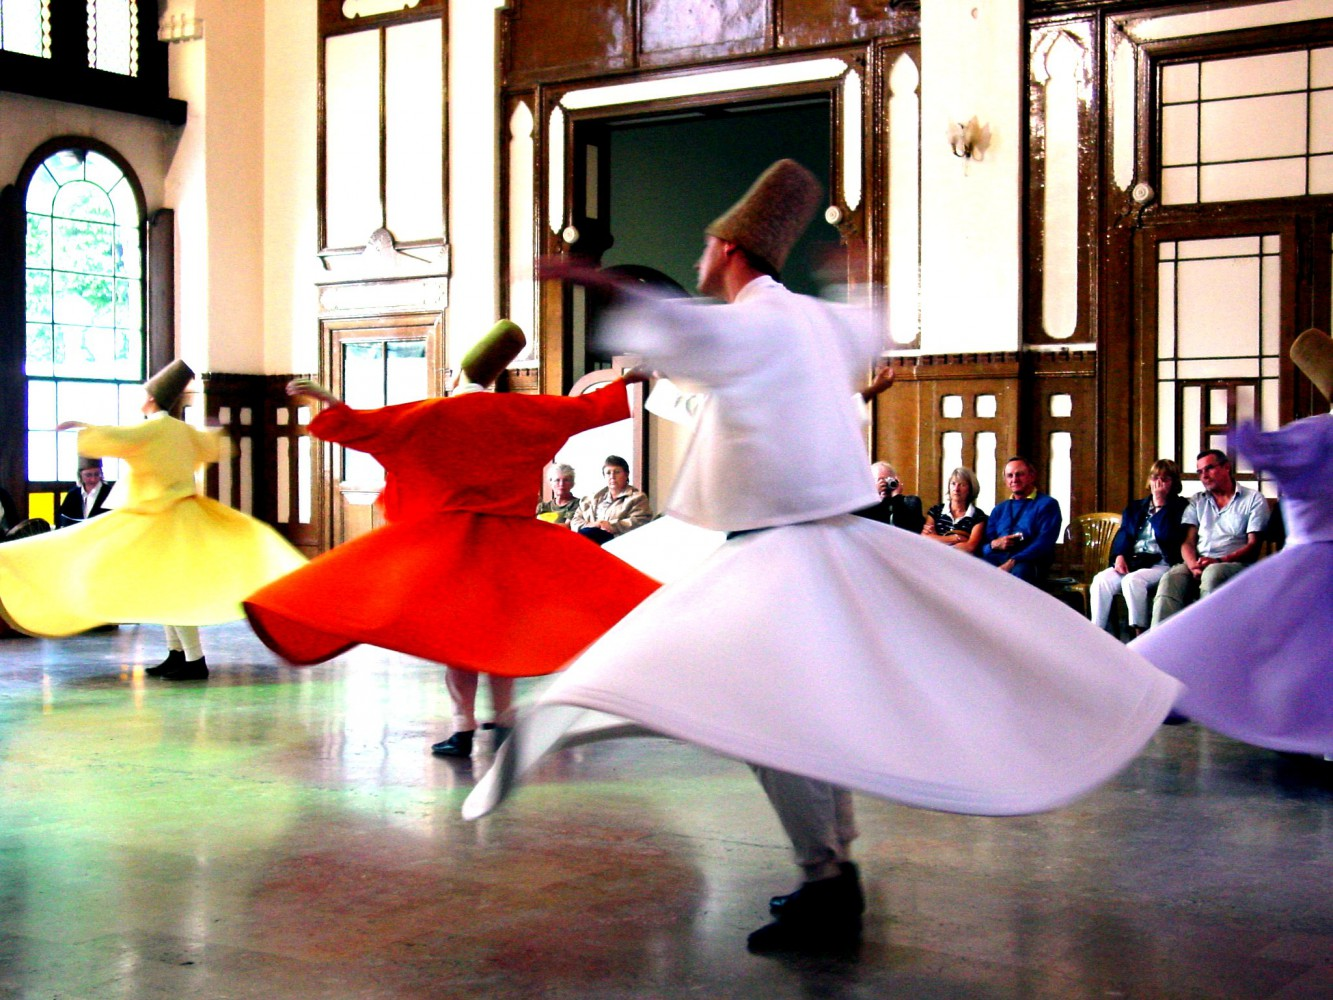 Mevlana Whirling Dervishes